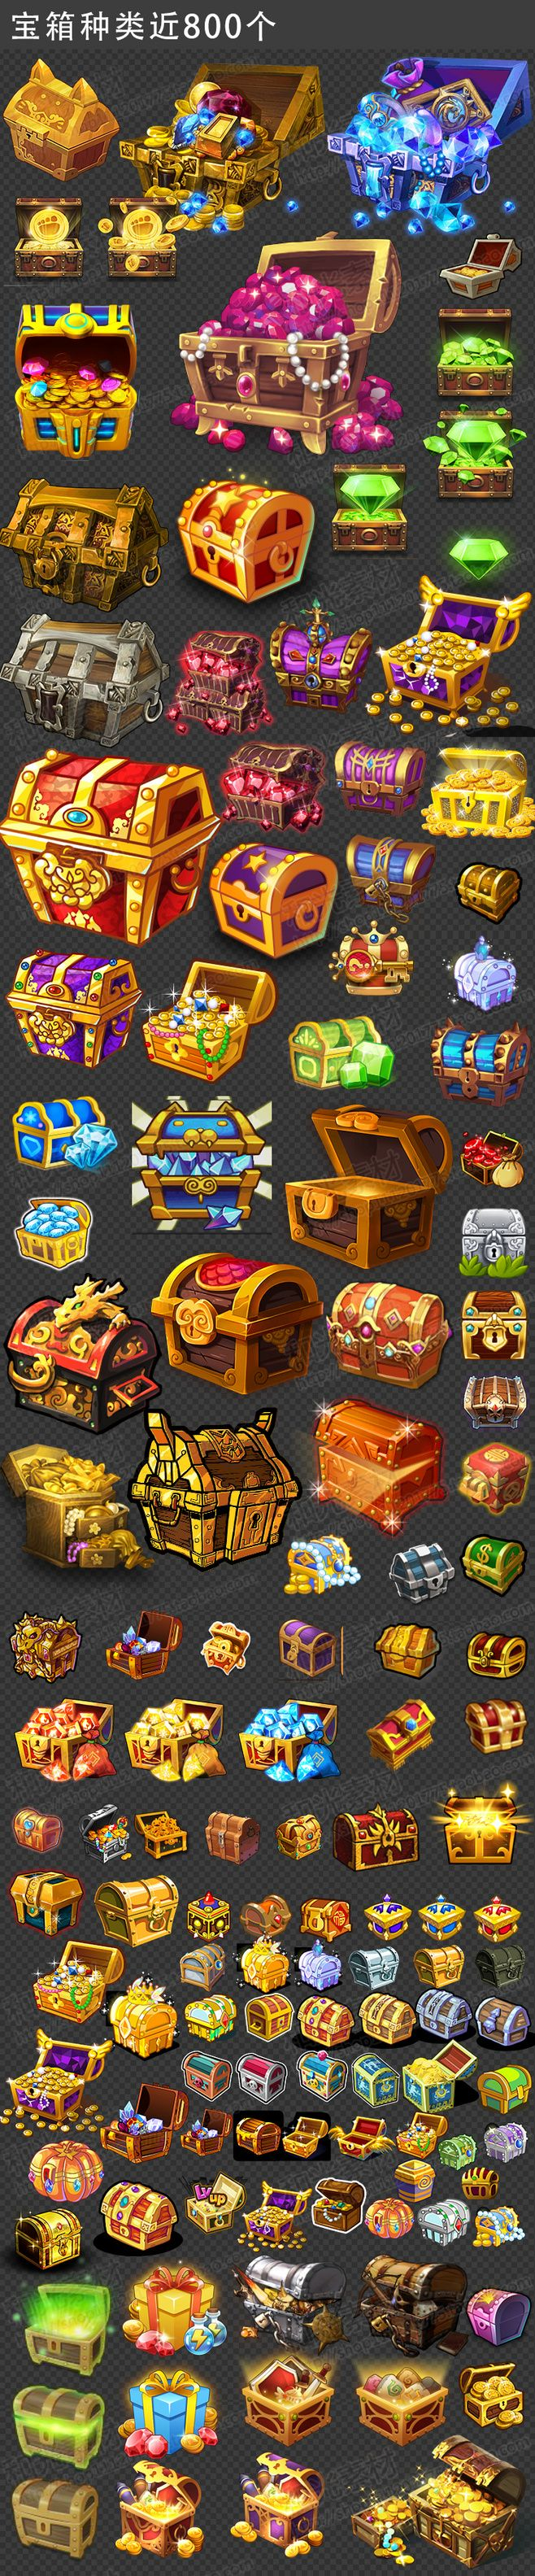 i will keep these art styles in min when creating my own chests within my game so i can have a variation of what can be found within my game